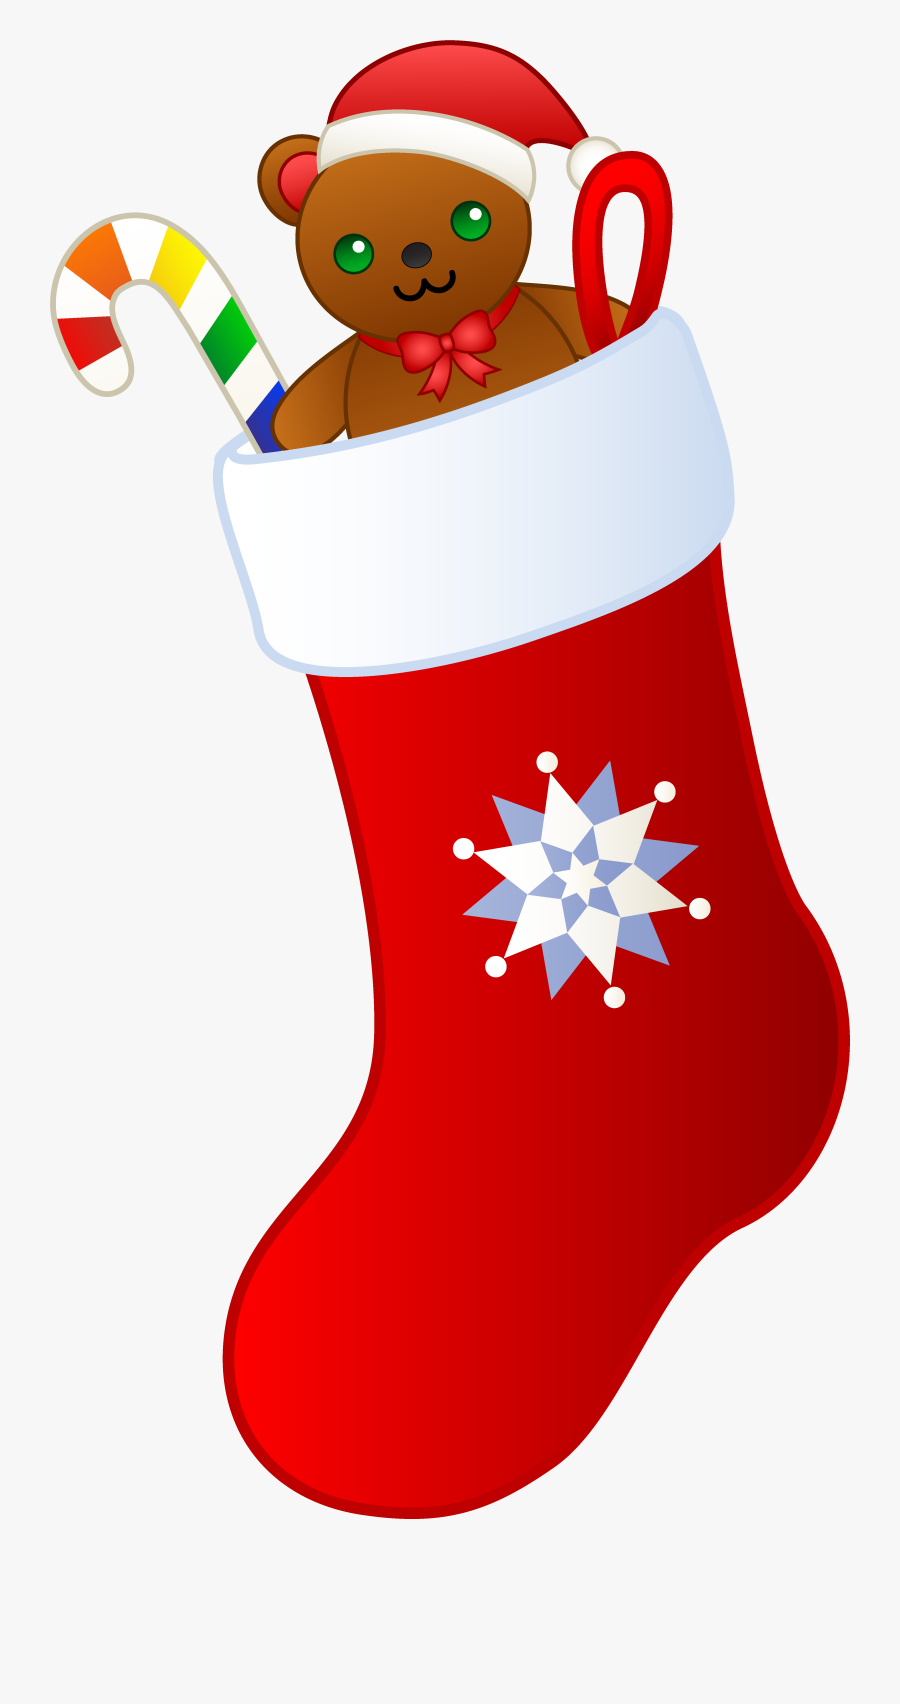 Elf Socks Pencil And - Christmas Stocking Clipart, Transparent Clipart